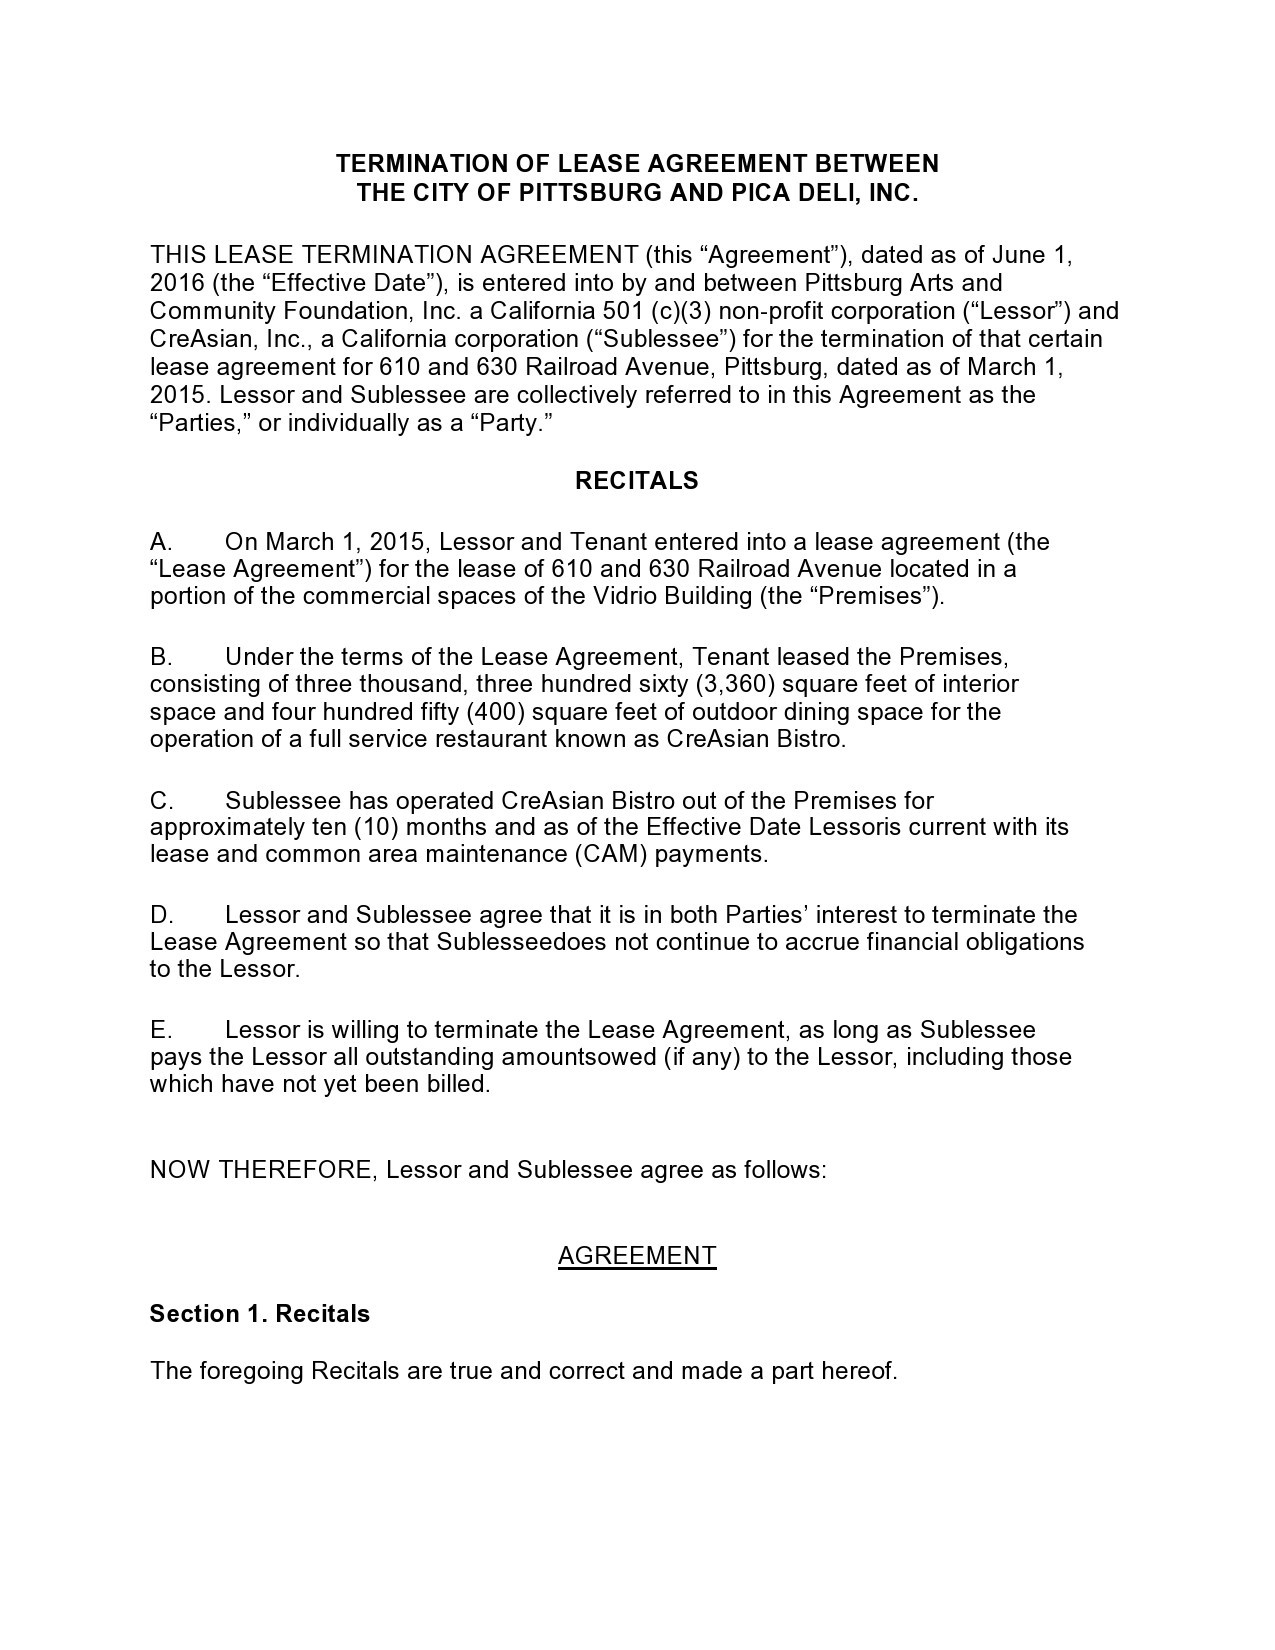 Free lease termination agreement 42